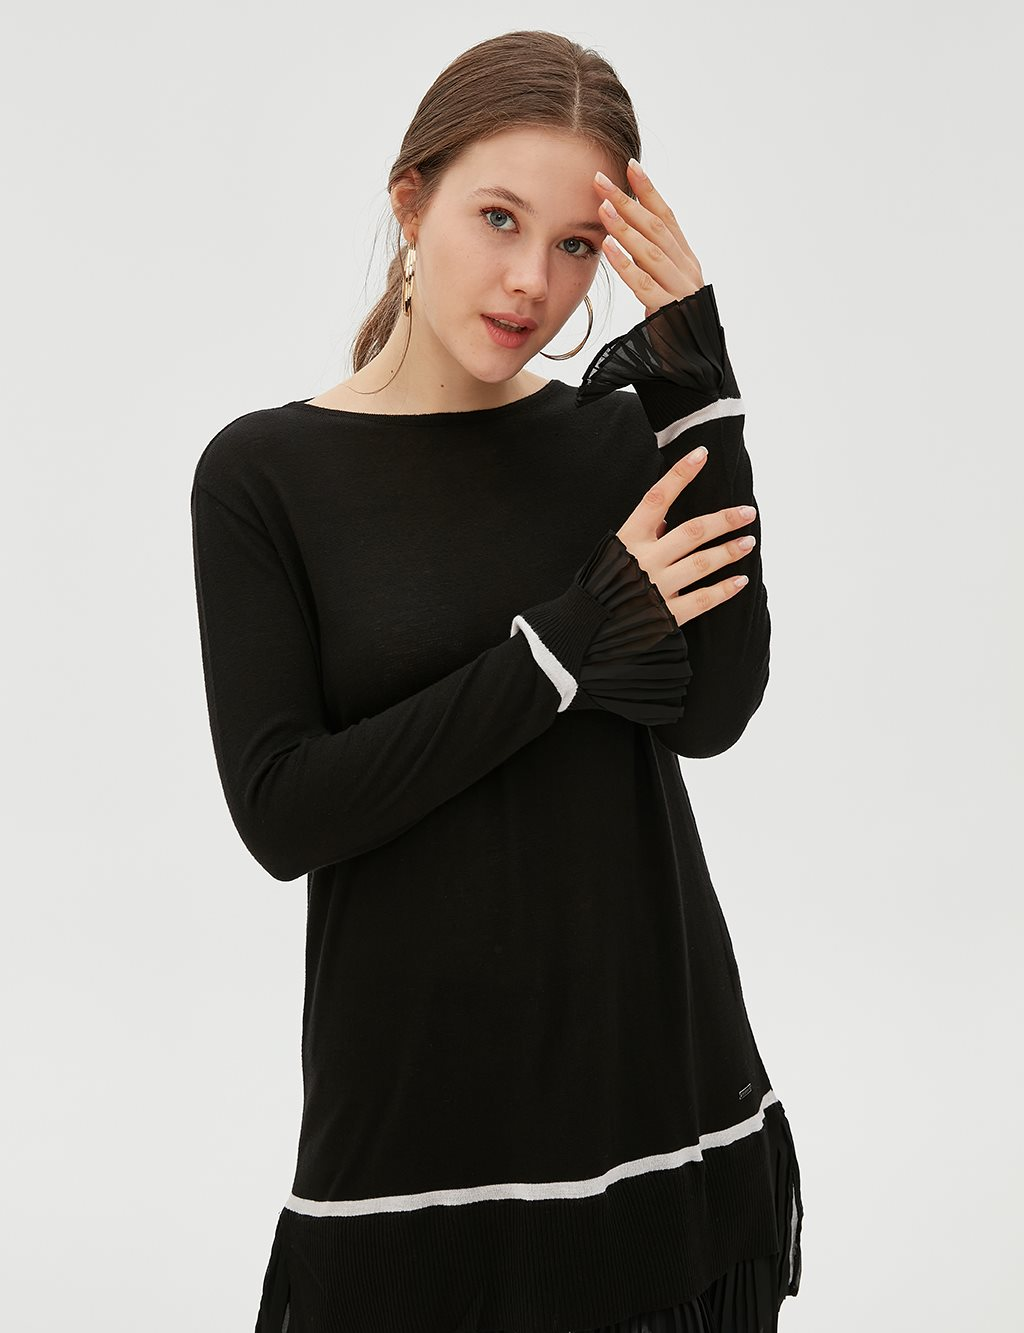 Ruffled Sleeve Knitwear Tunic B20 TRK20 Black